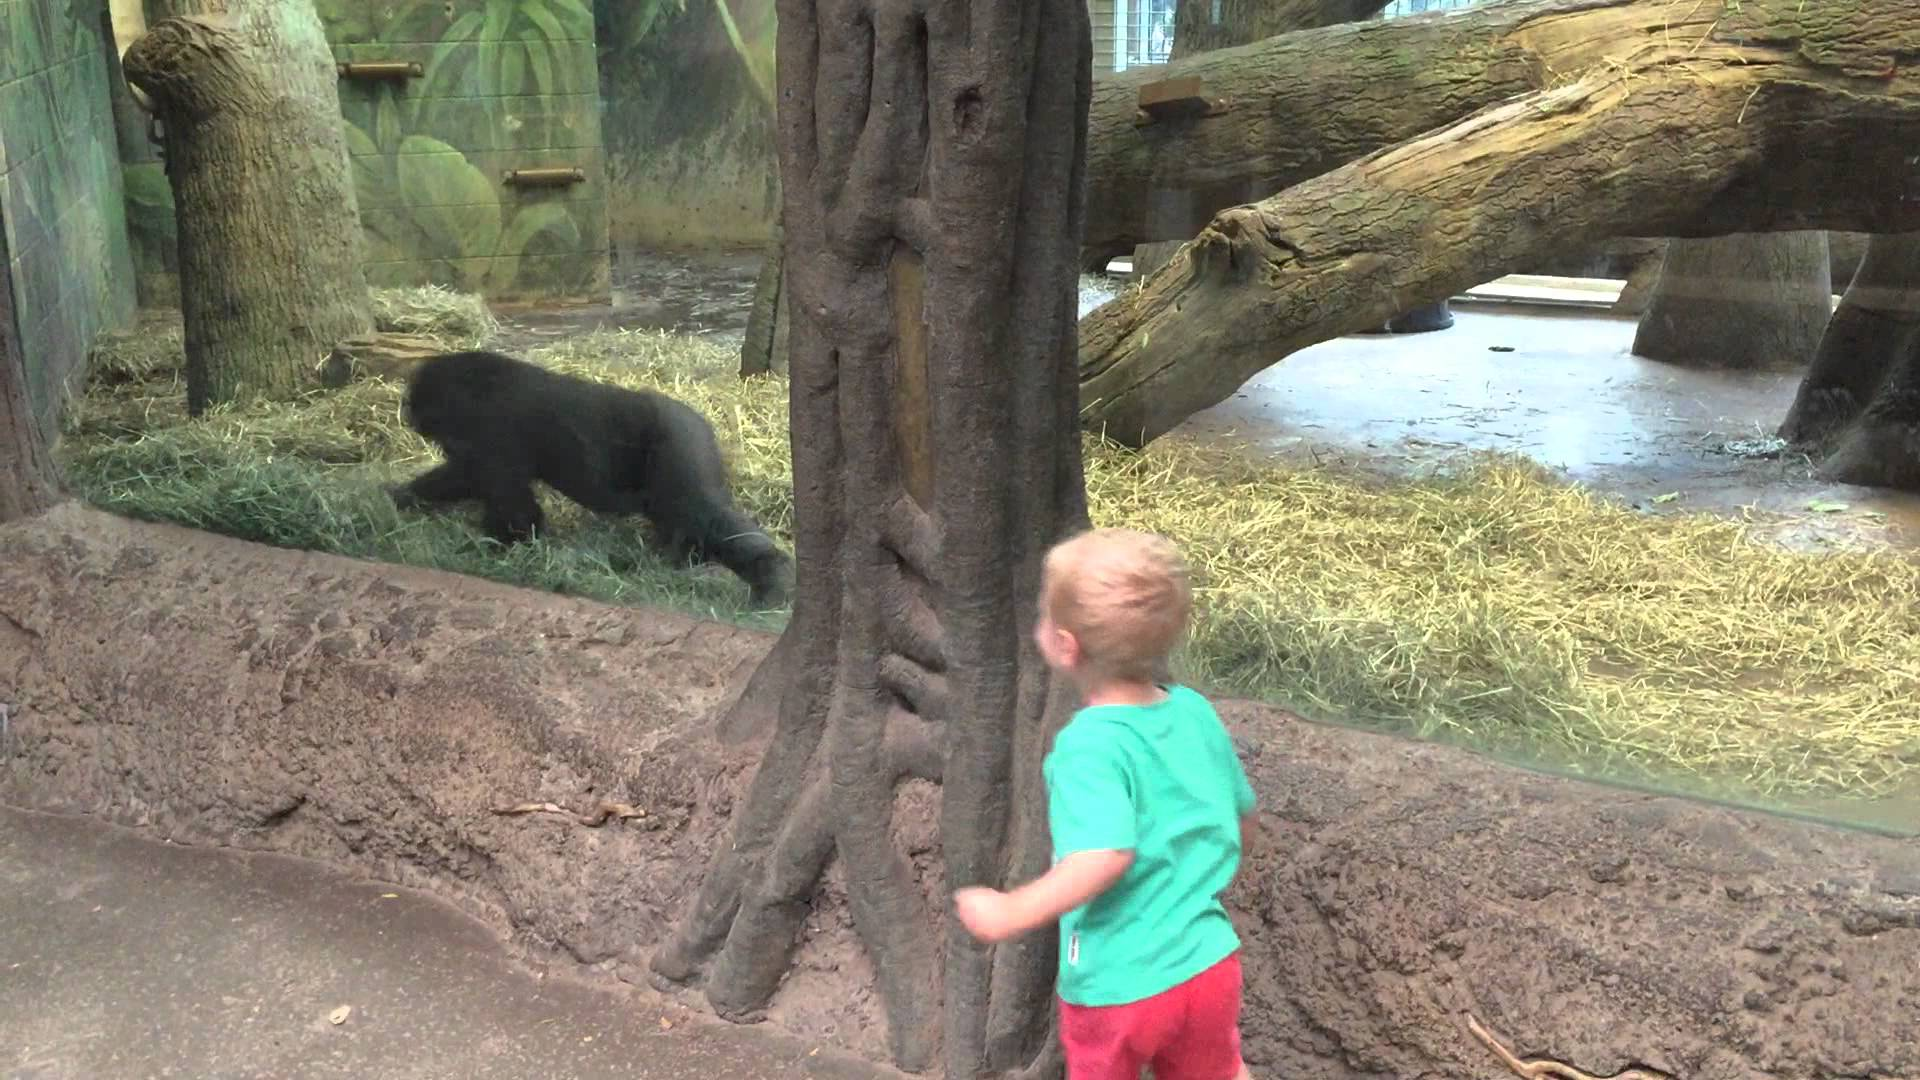 A kid playing with the baby gorilla